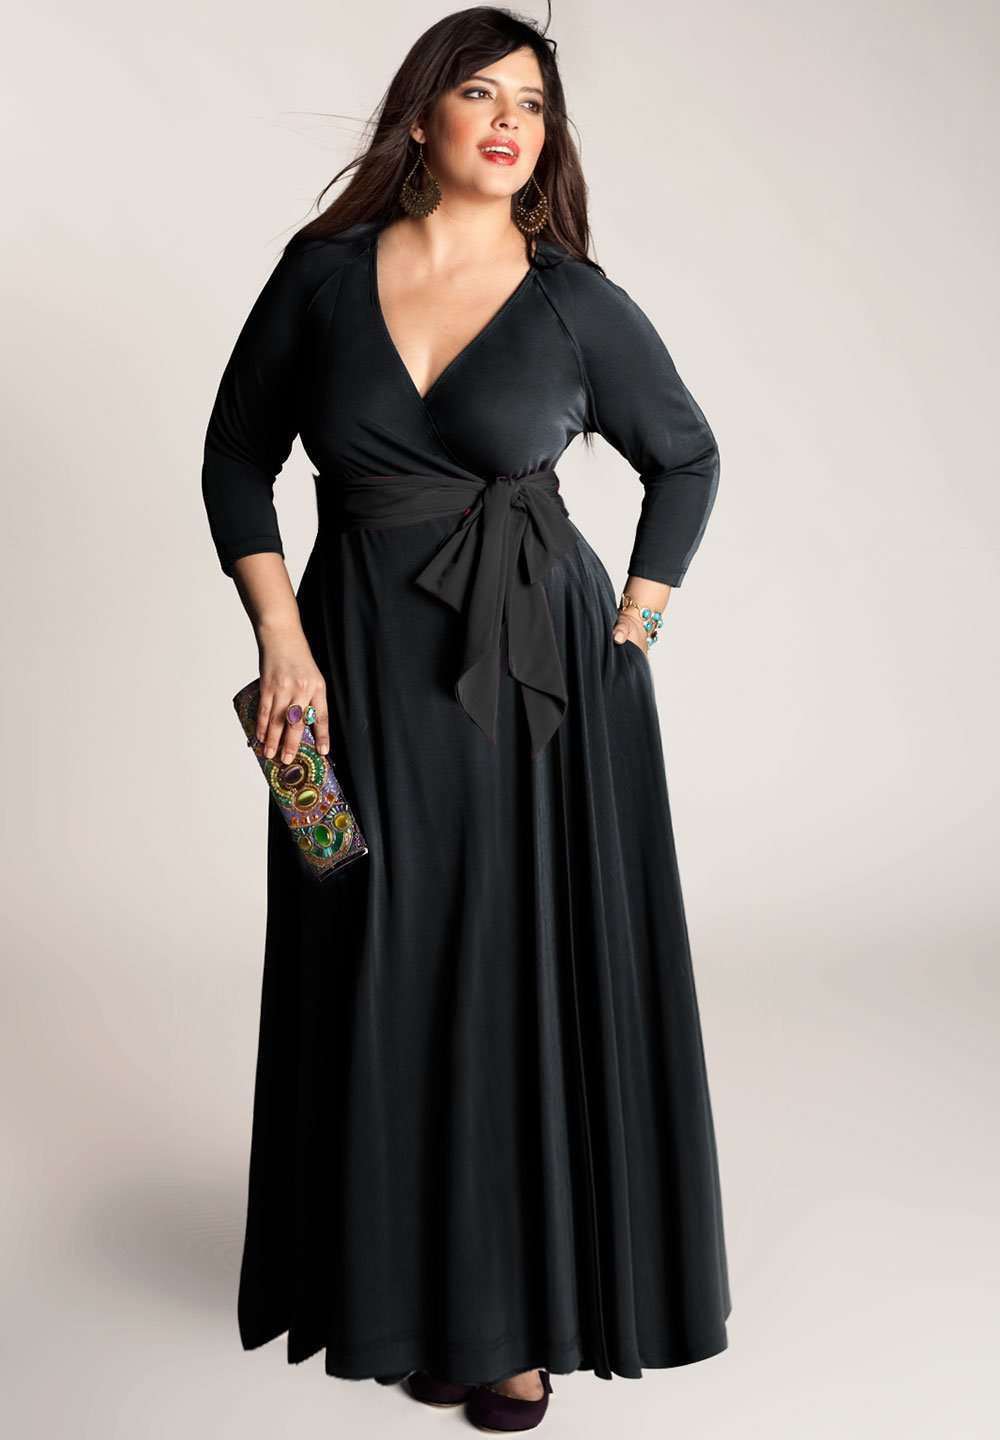 119c44b4c6 Trendy and Remarkable Designer Plus Size - Bellissima Dress - igigi.com